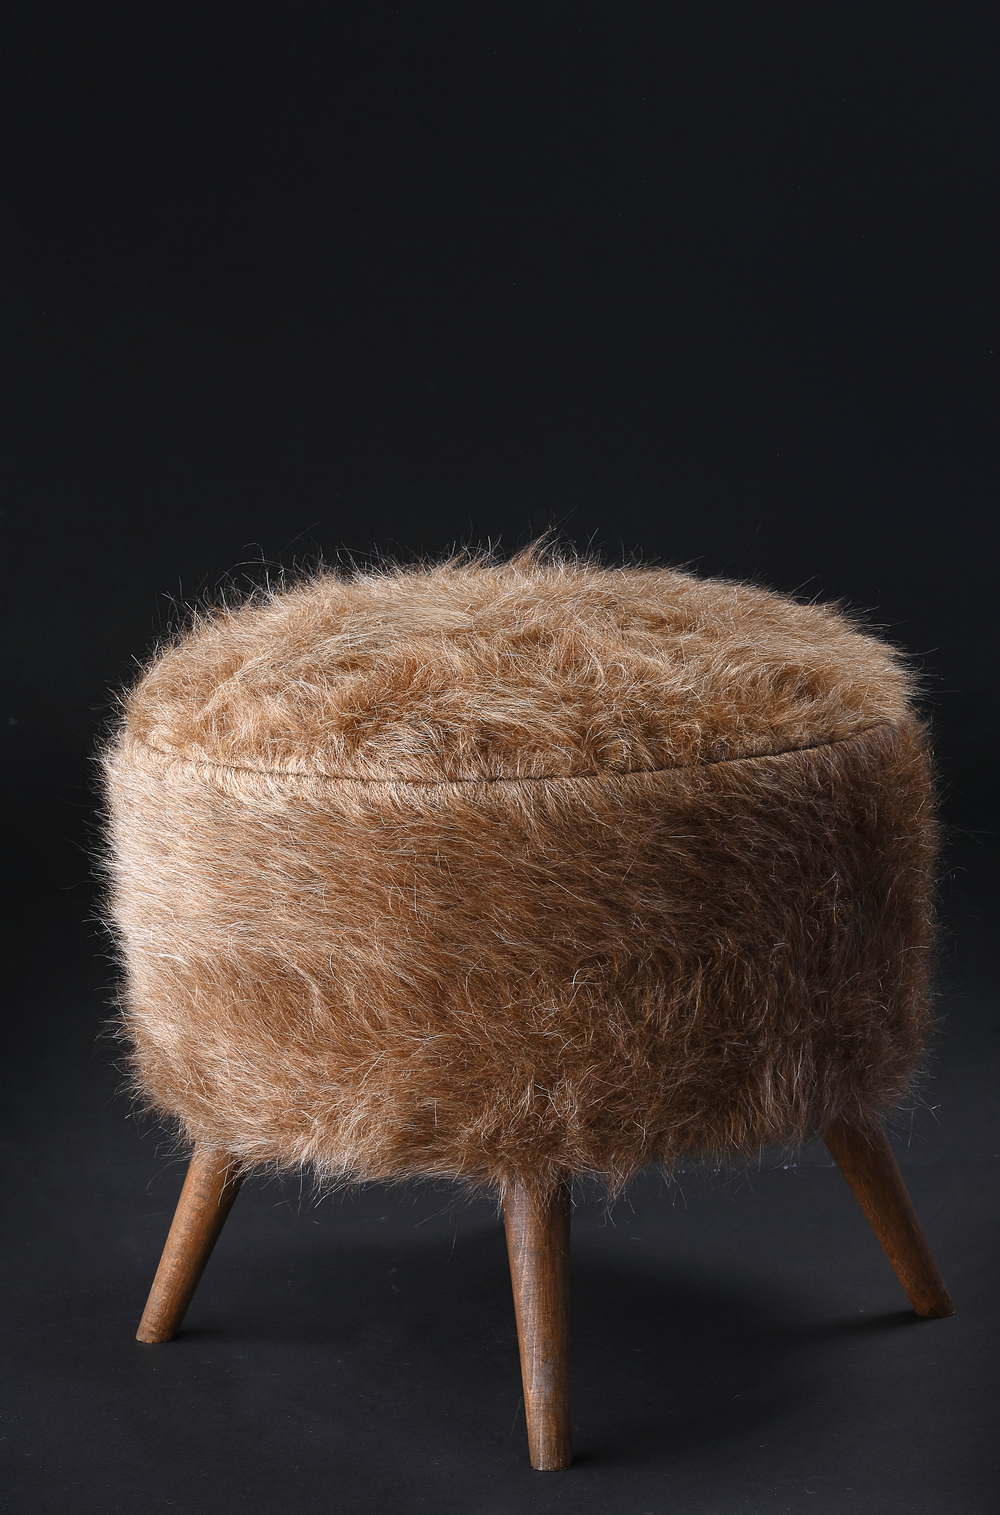 Pouf of Mohair of Angora goat - Camel